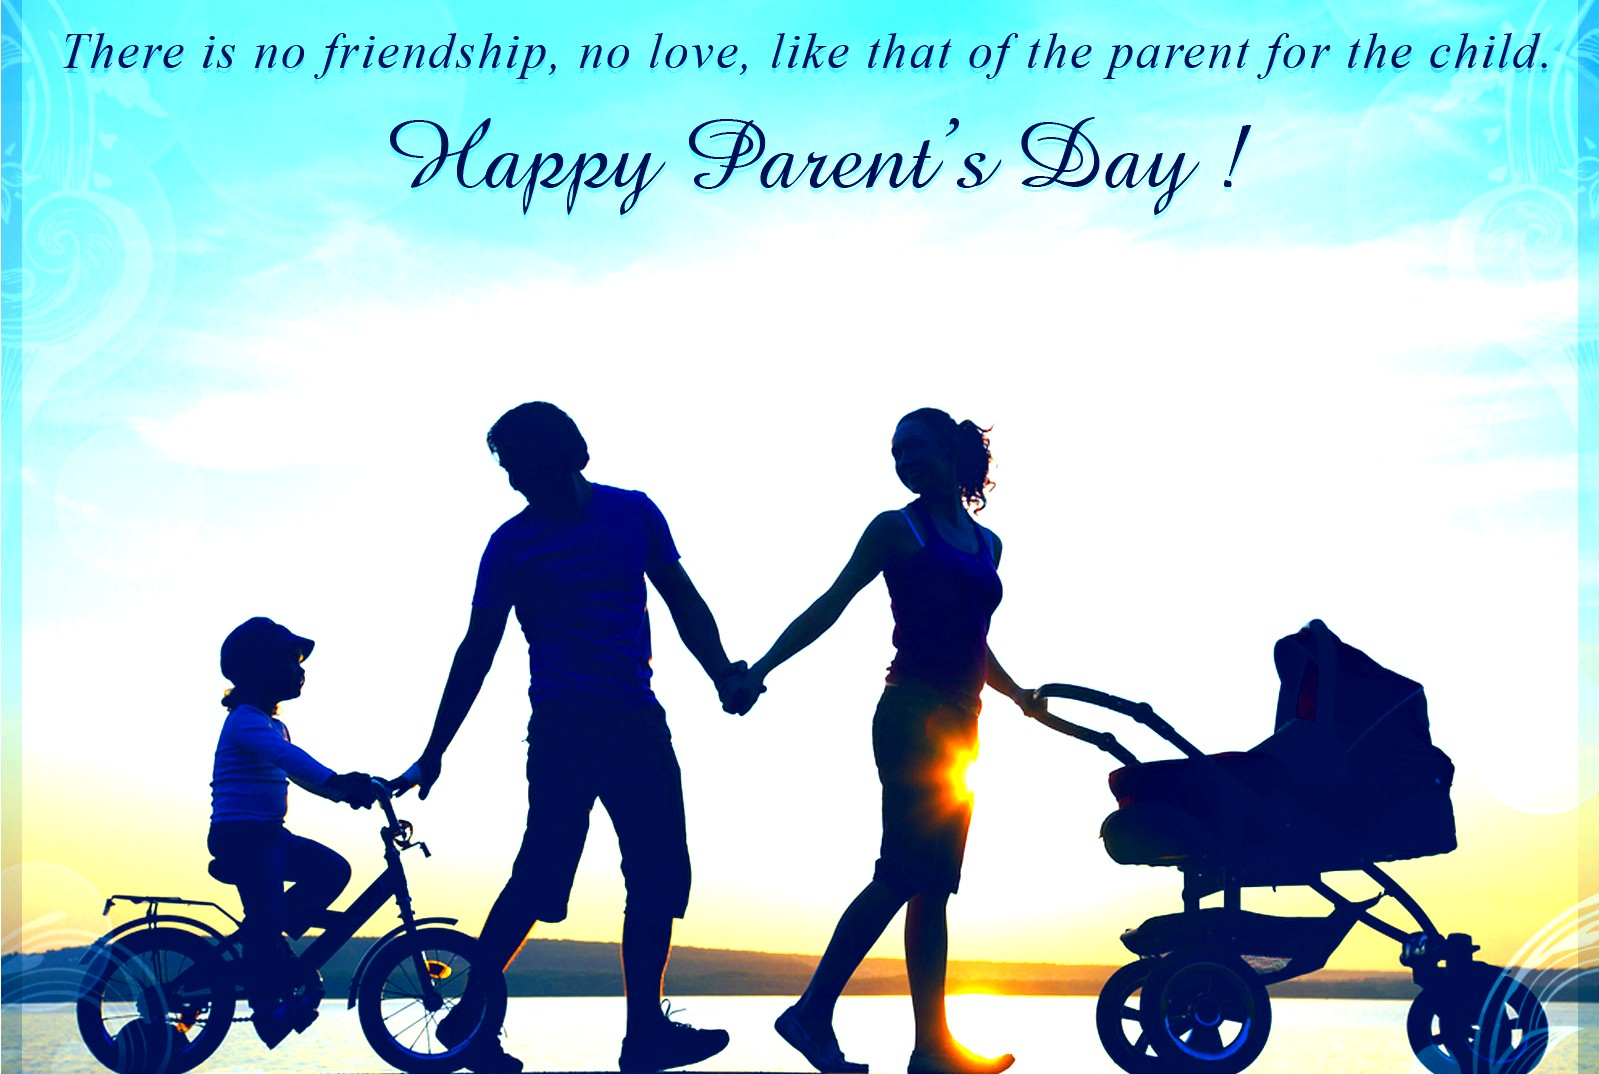 Happy Parents Day 2016 Sms Wishes Images Wallpapers Whatsapp 1599x1074